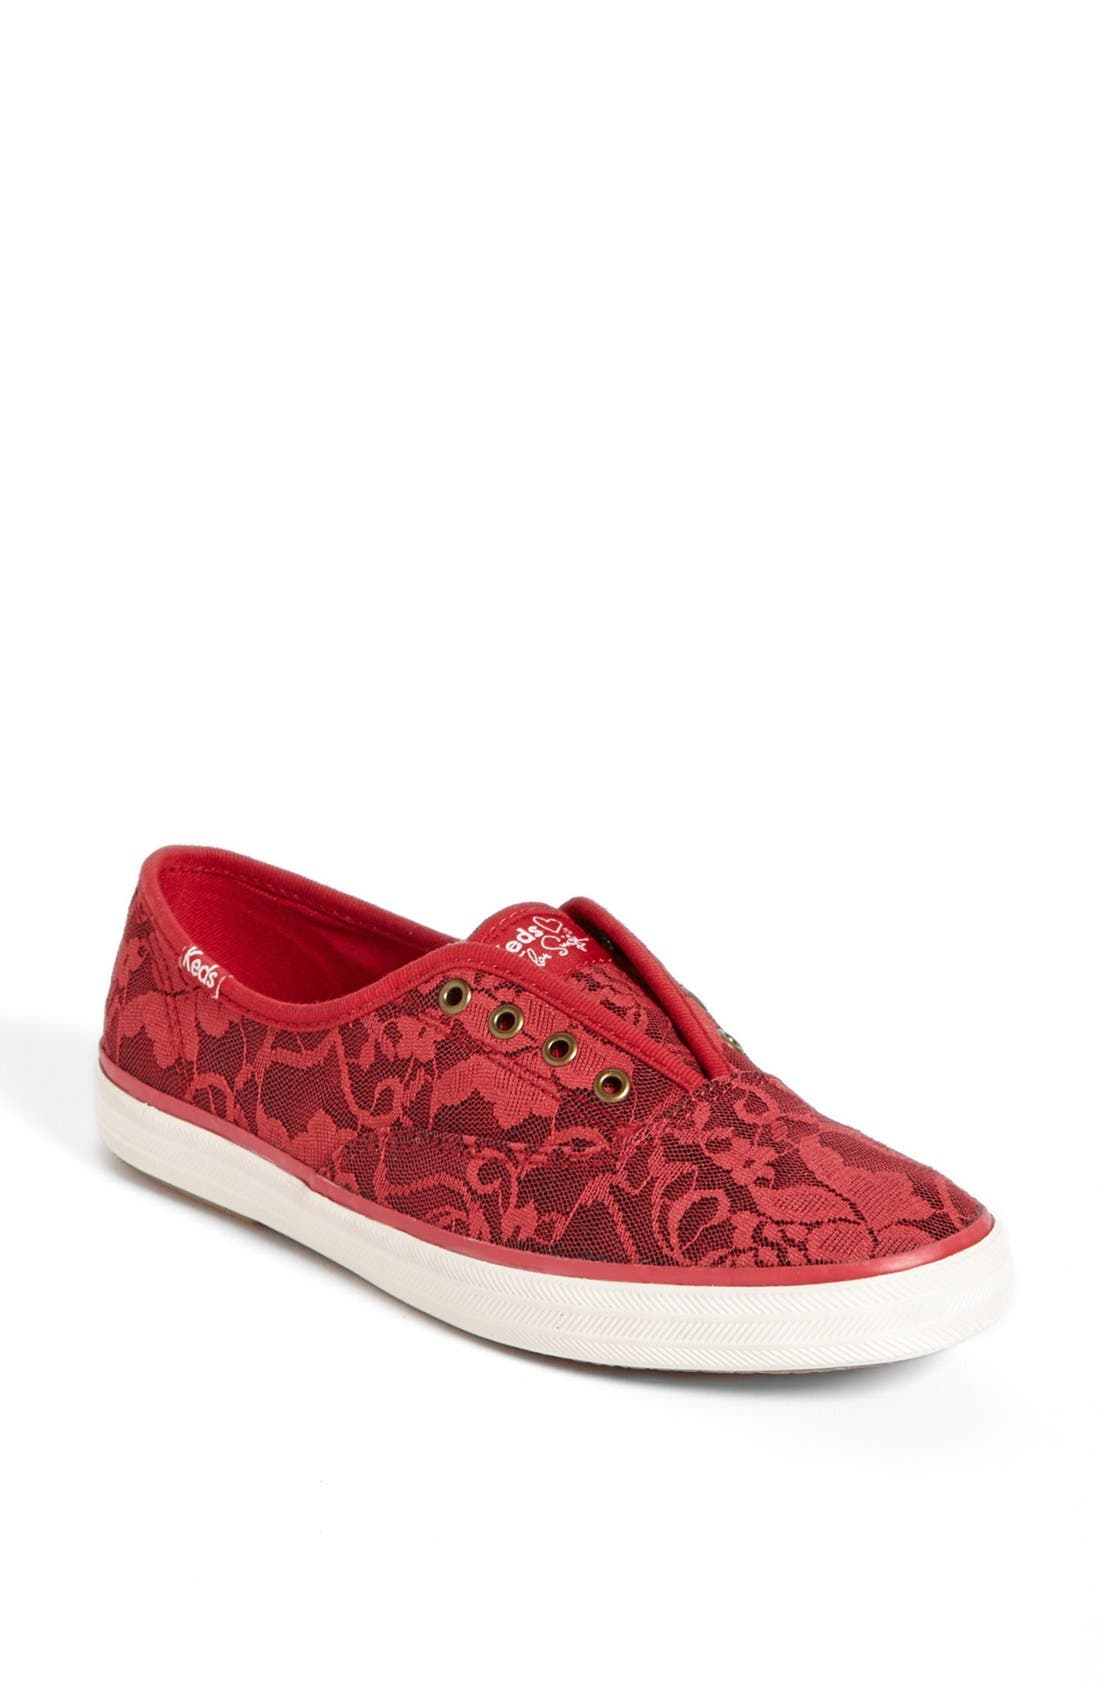 Main Image - Keds® Taylor Swift Champion Sneaker